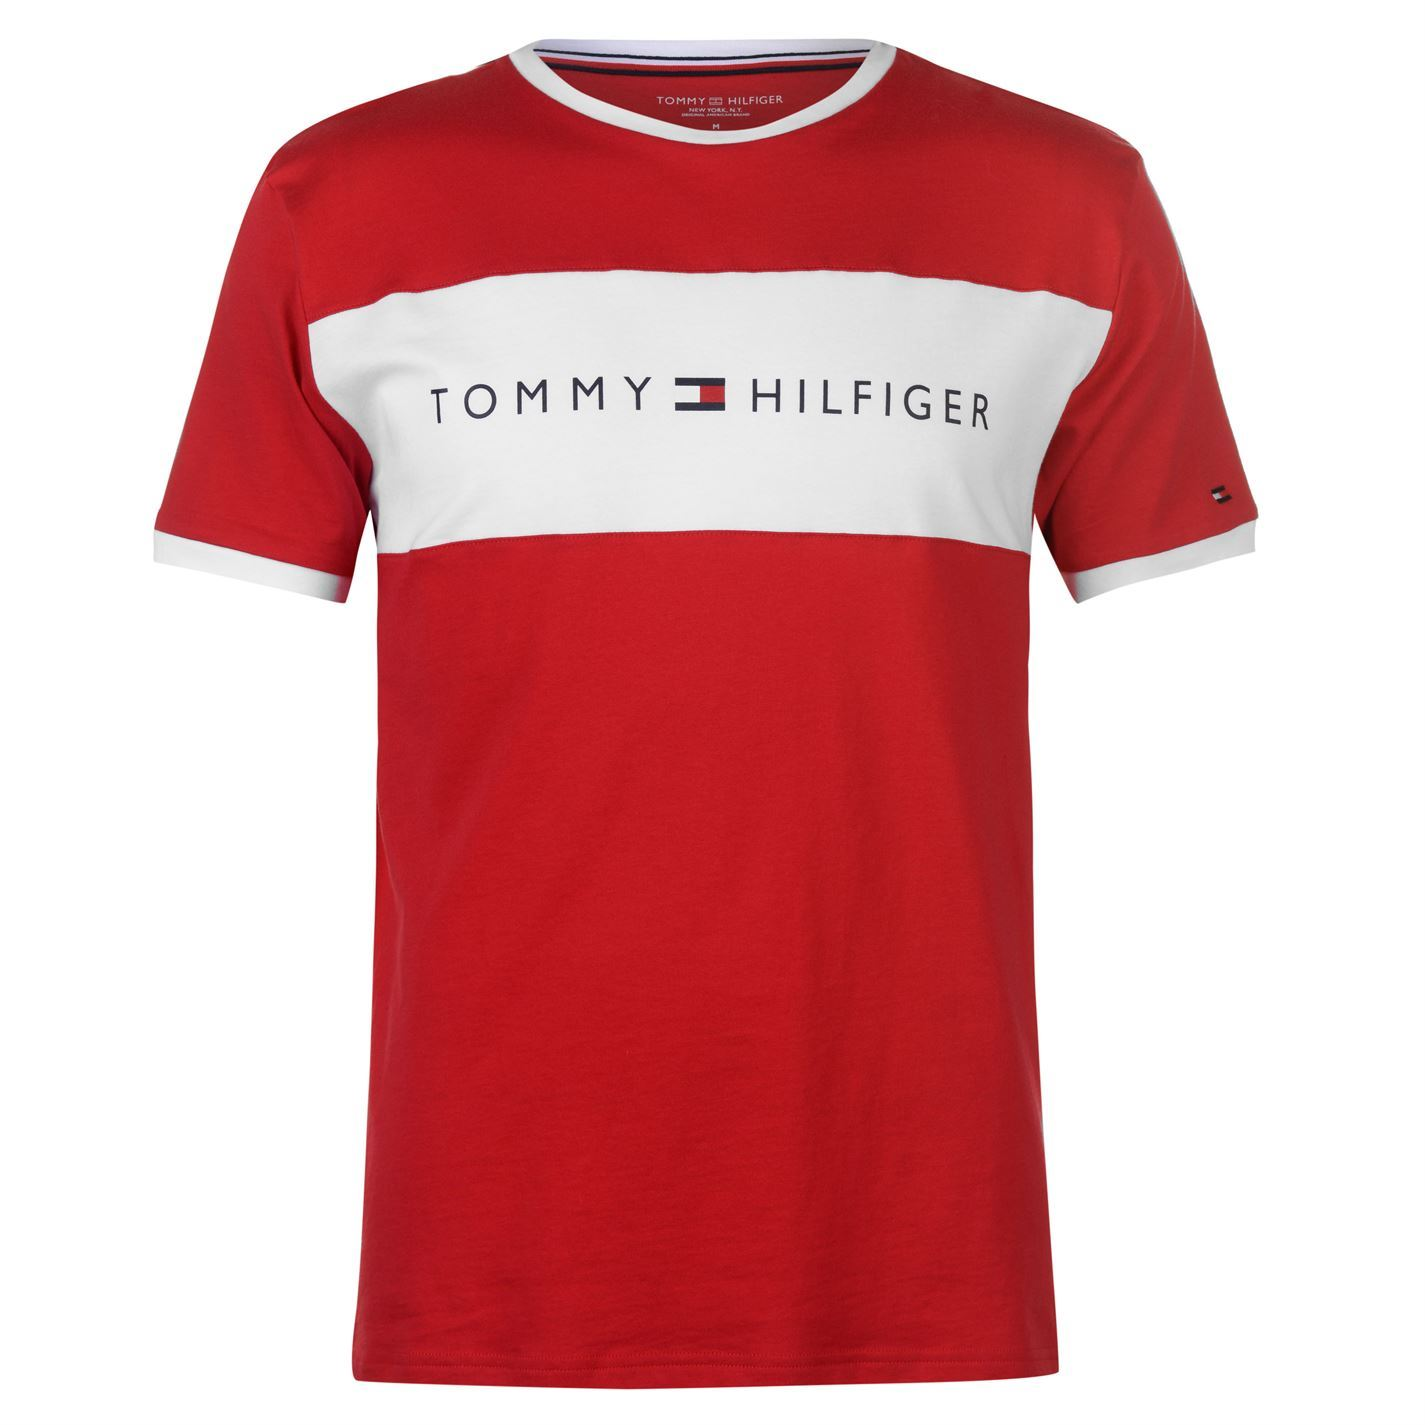 29a433ff331f4 Details about Mens Tommy Hilfiger Chest Logo Short Sleeve T Shirt Crew Neck  New